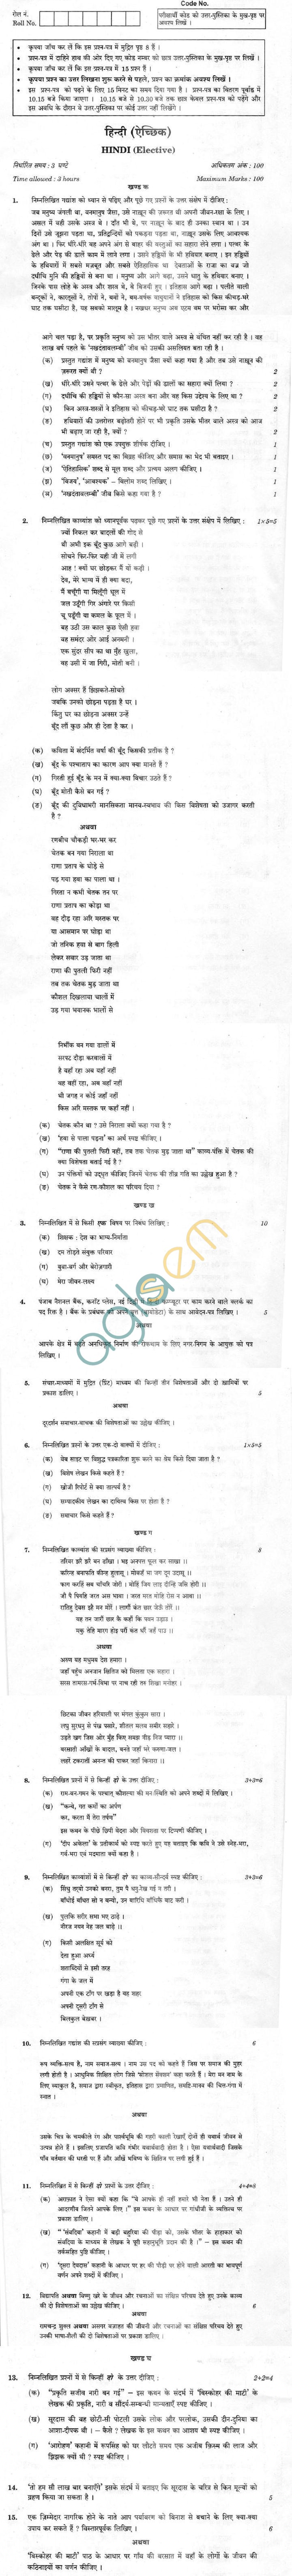 CBSE Compartment Exam 2013 Class XII Question Paper - Hindi (Elective)